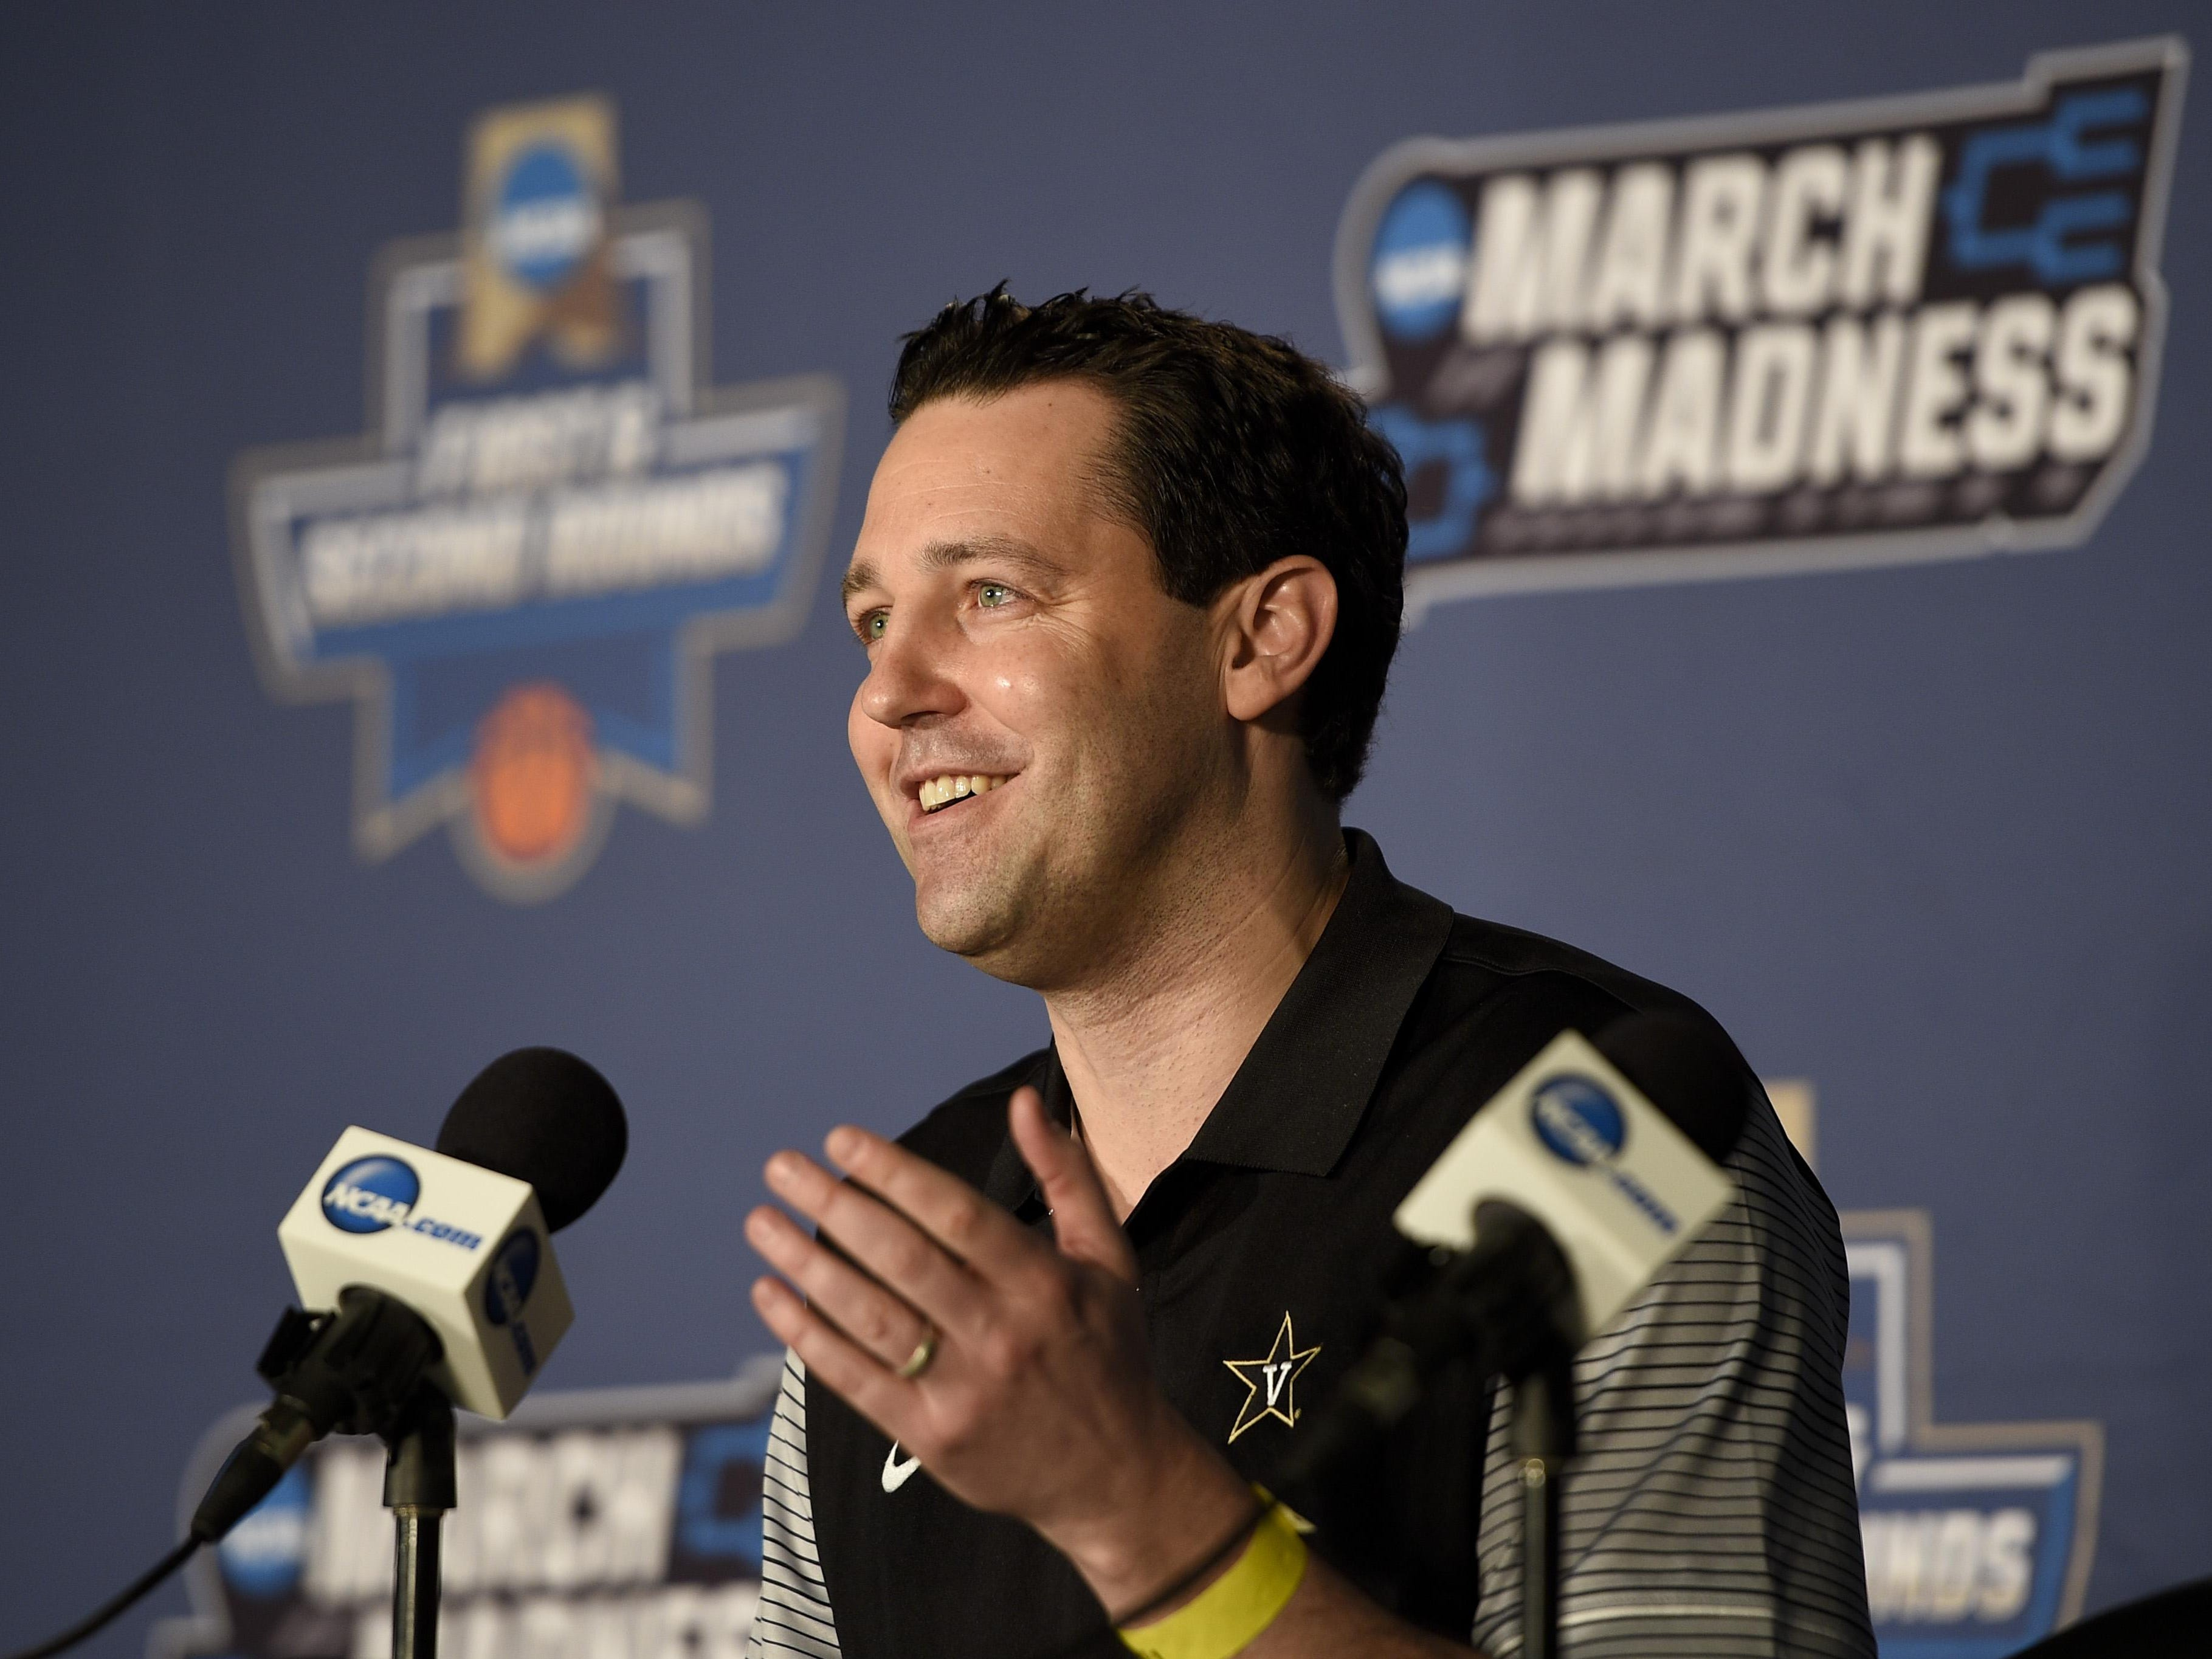 Vanderbilt coach Bryce Drew talks during an interview with the media Wednesday at Vivint Smart Home Arena.